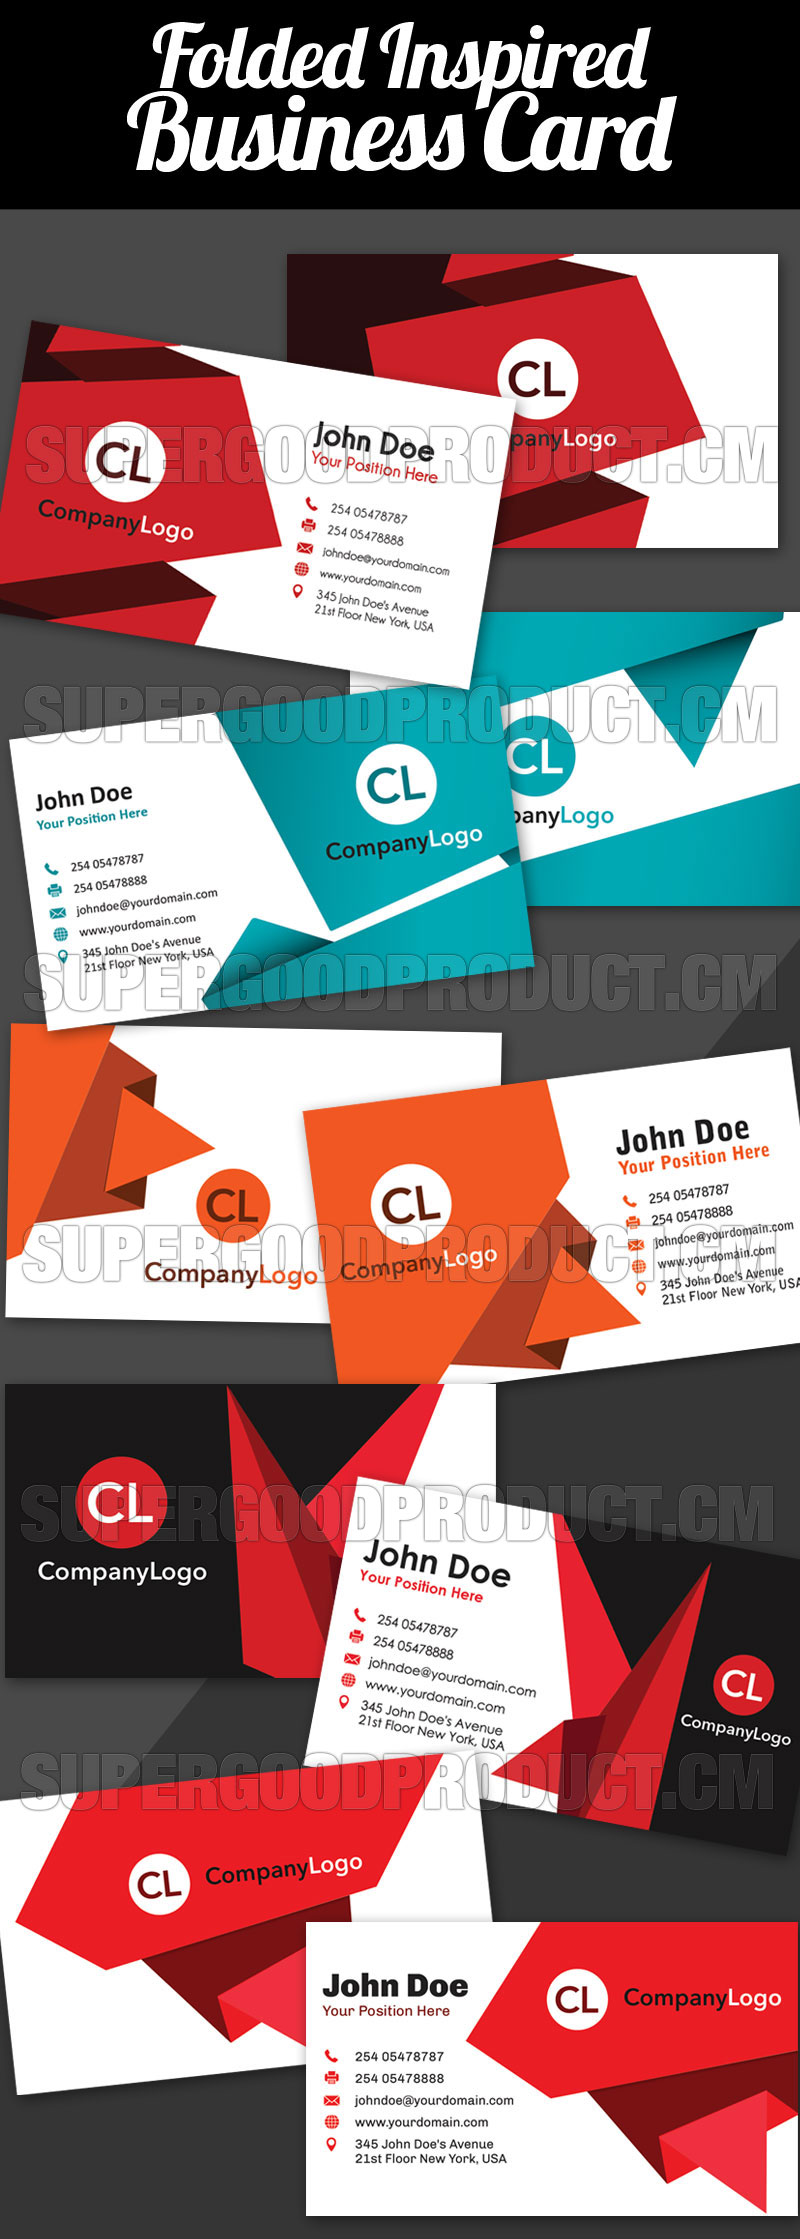 Folded-Inspired-Business-Card